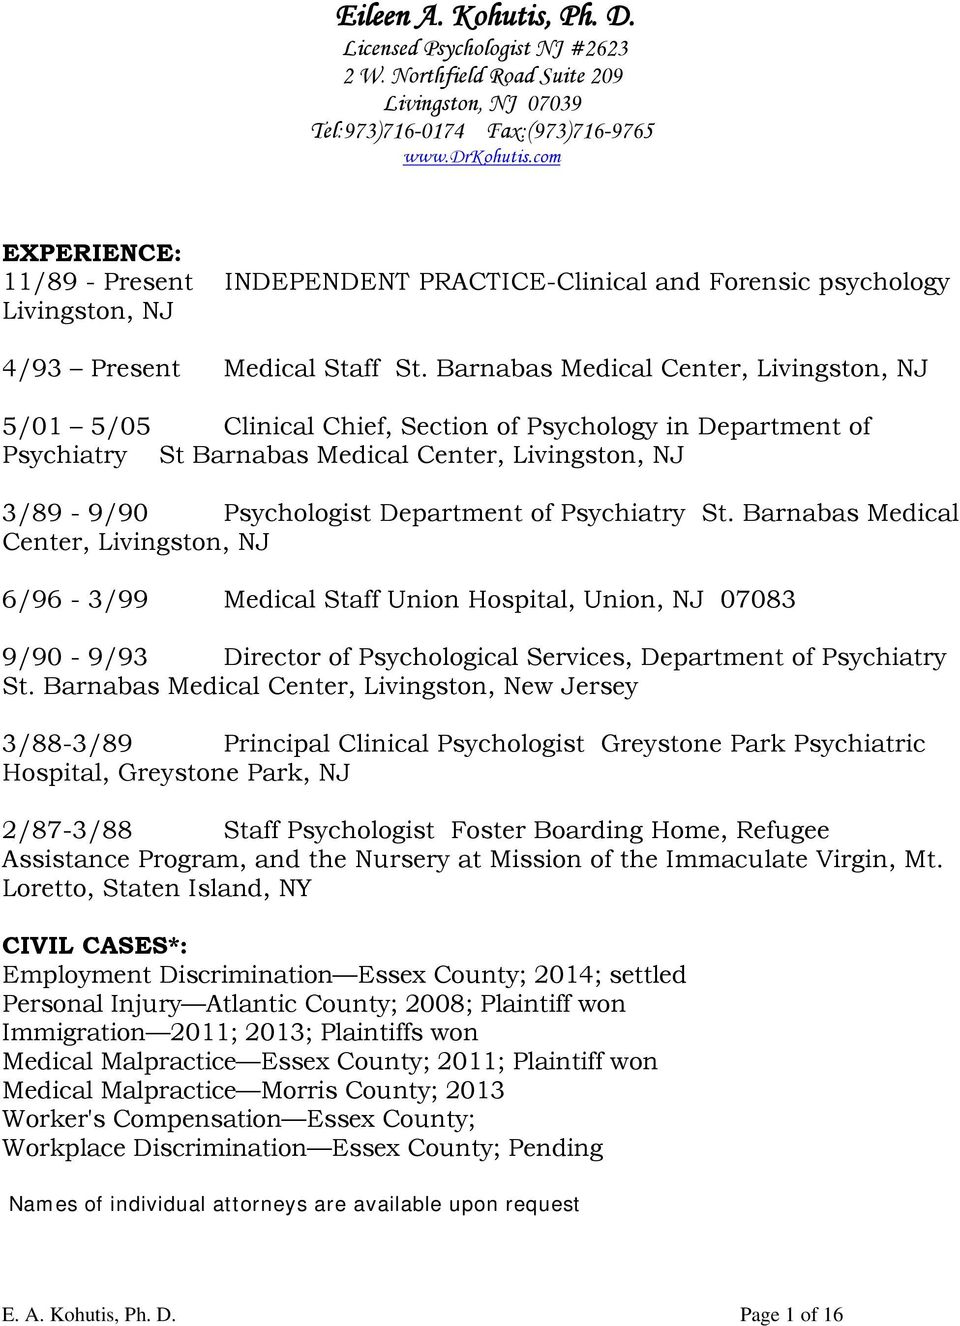 Barnabas Medical Center, Livingston, NJ 5/01 5/05 Clinical Chief, Section of Psychology in Department of Psychiatry St Barnabas Medical Center, Livingston, NJ 3/89-9/90 Psychologist Department of